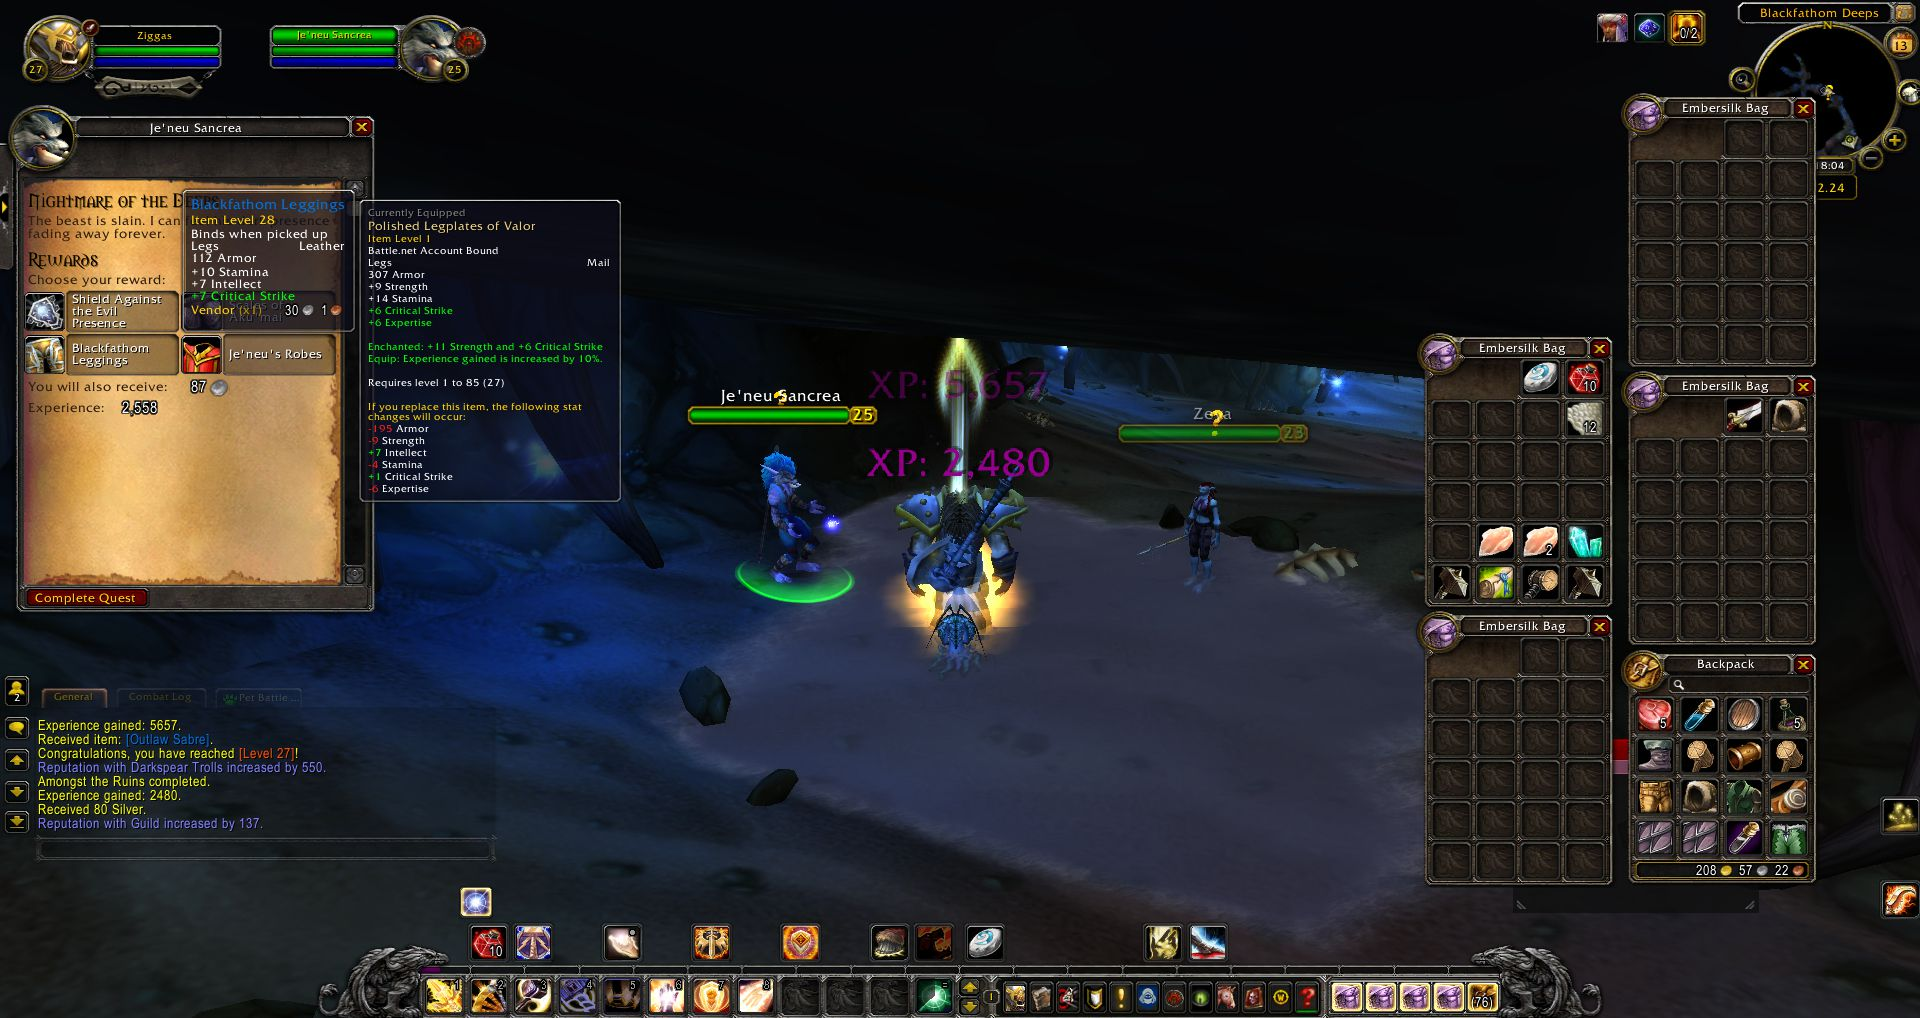 Je'neu Sancrea wow screenshot